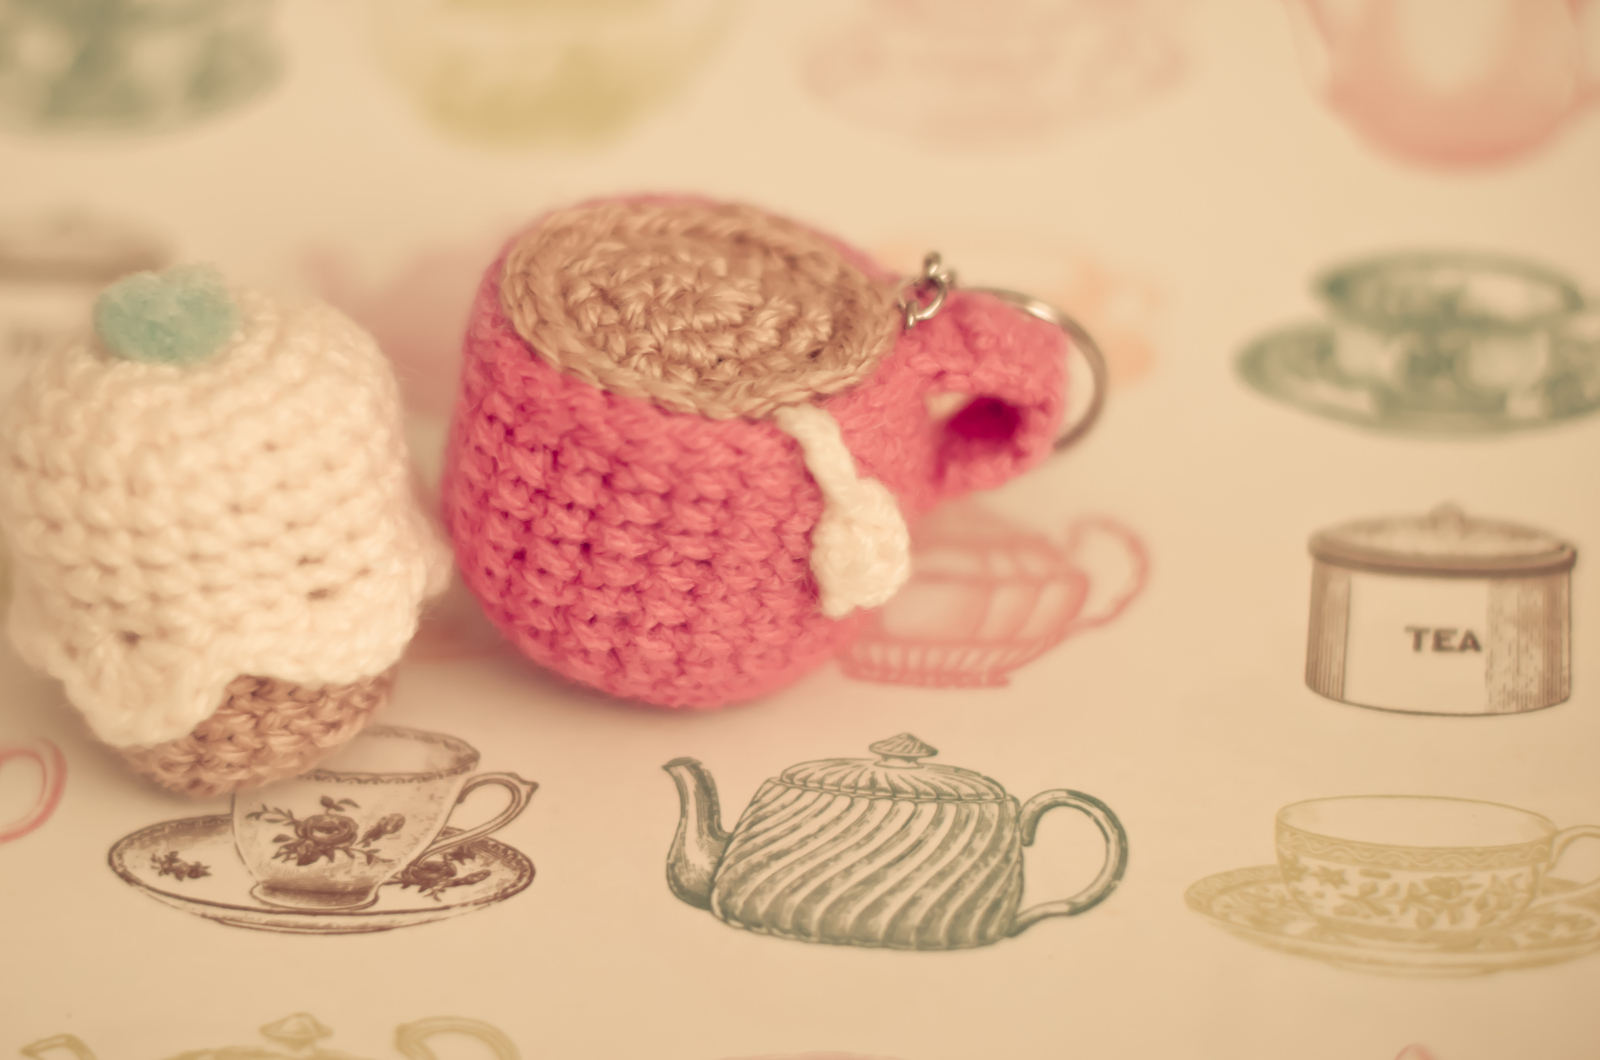 Crochet Tea & Cupcake Keyrings · A Knit Or Crochet Keyring ...